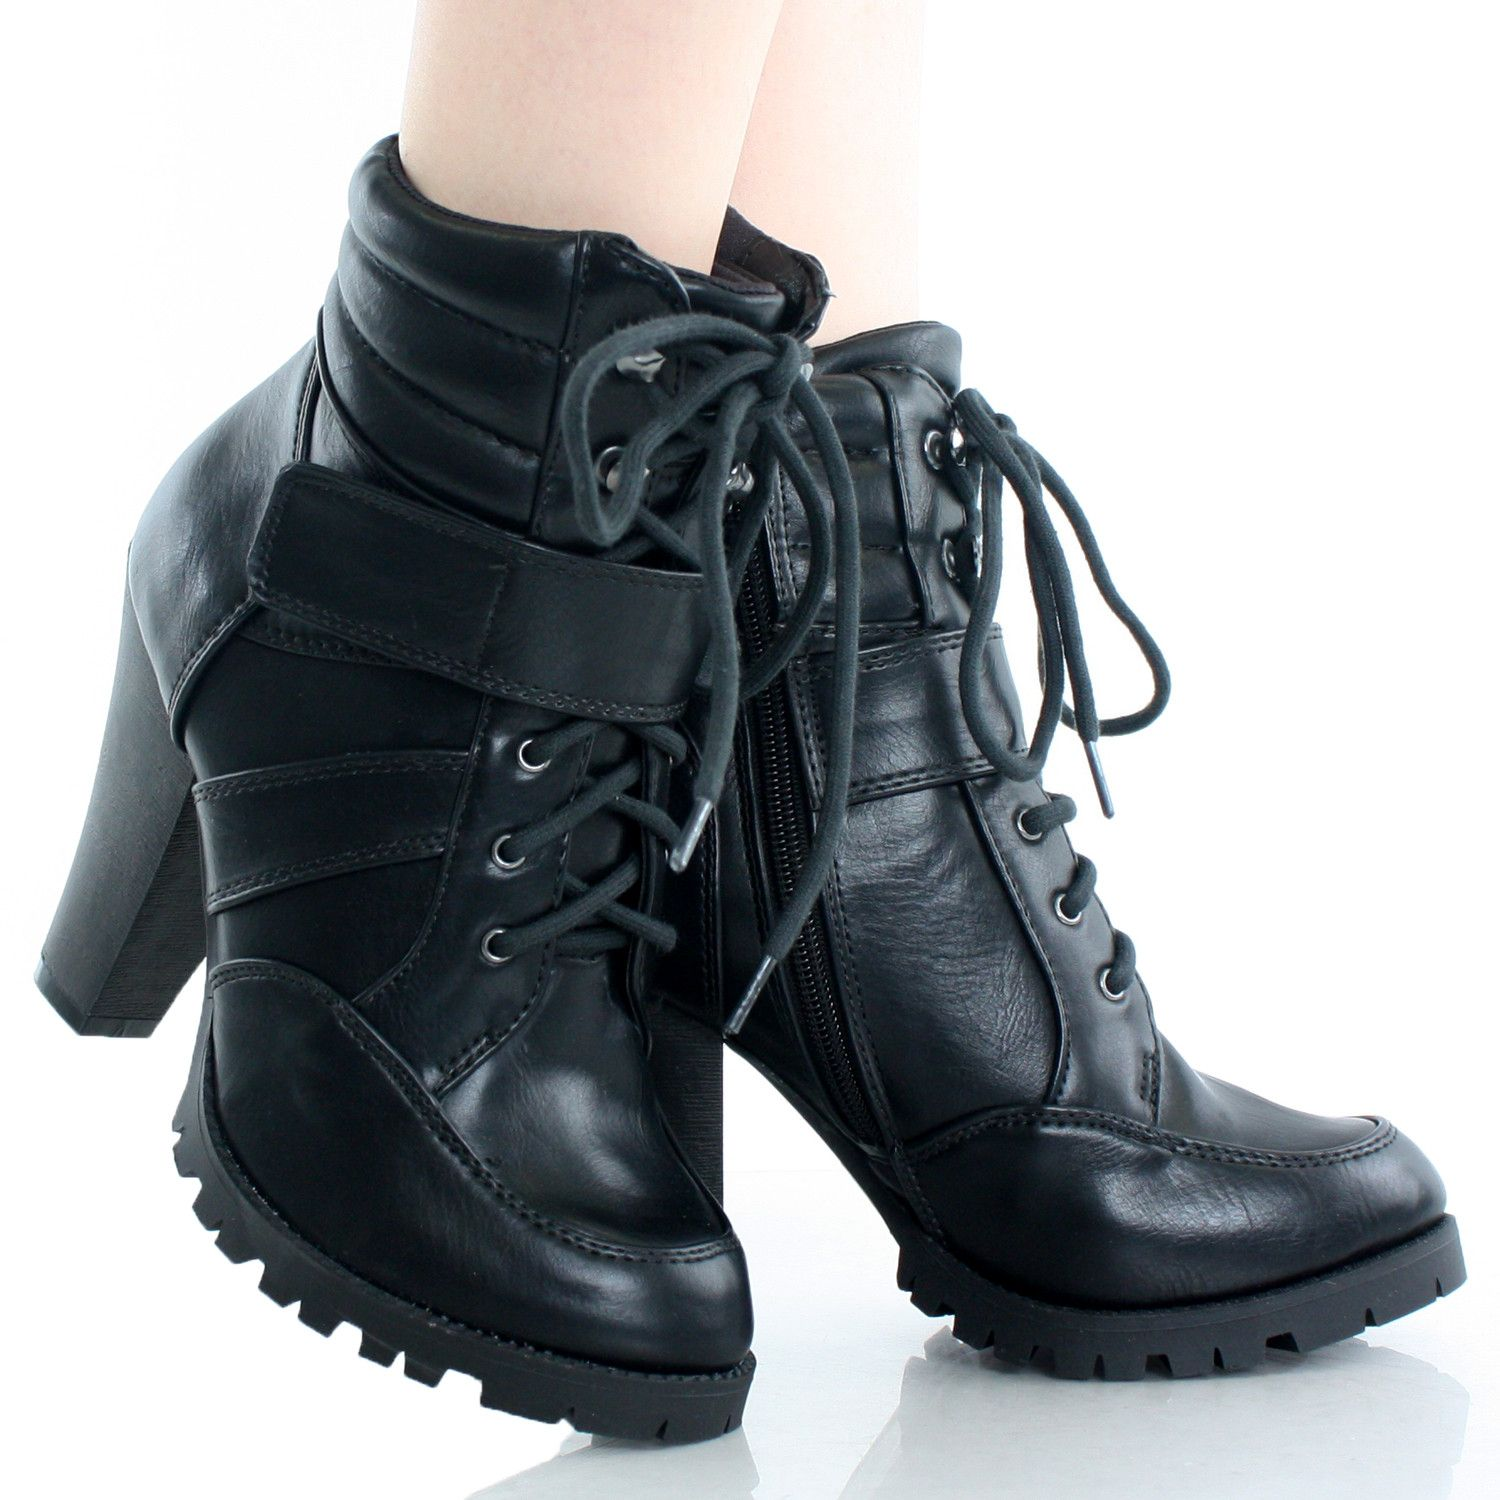 Lance-H Lace Up Ankle Boots – DWDShoes